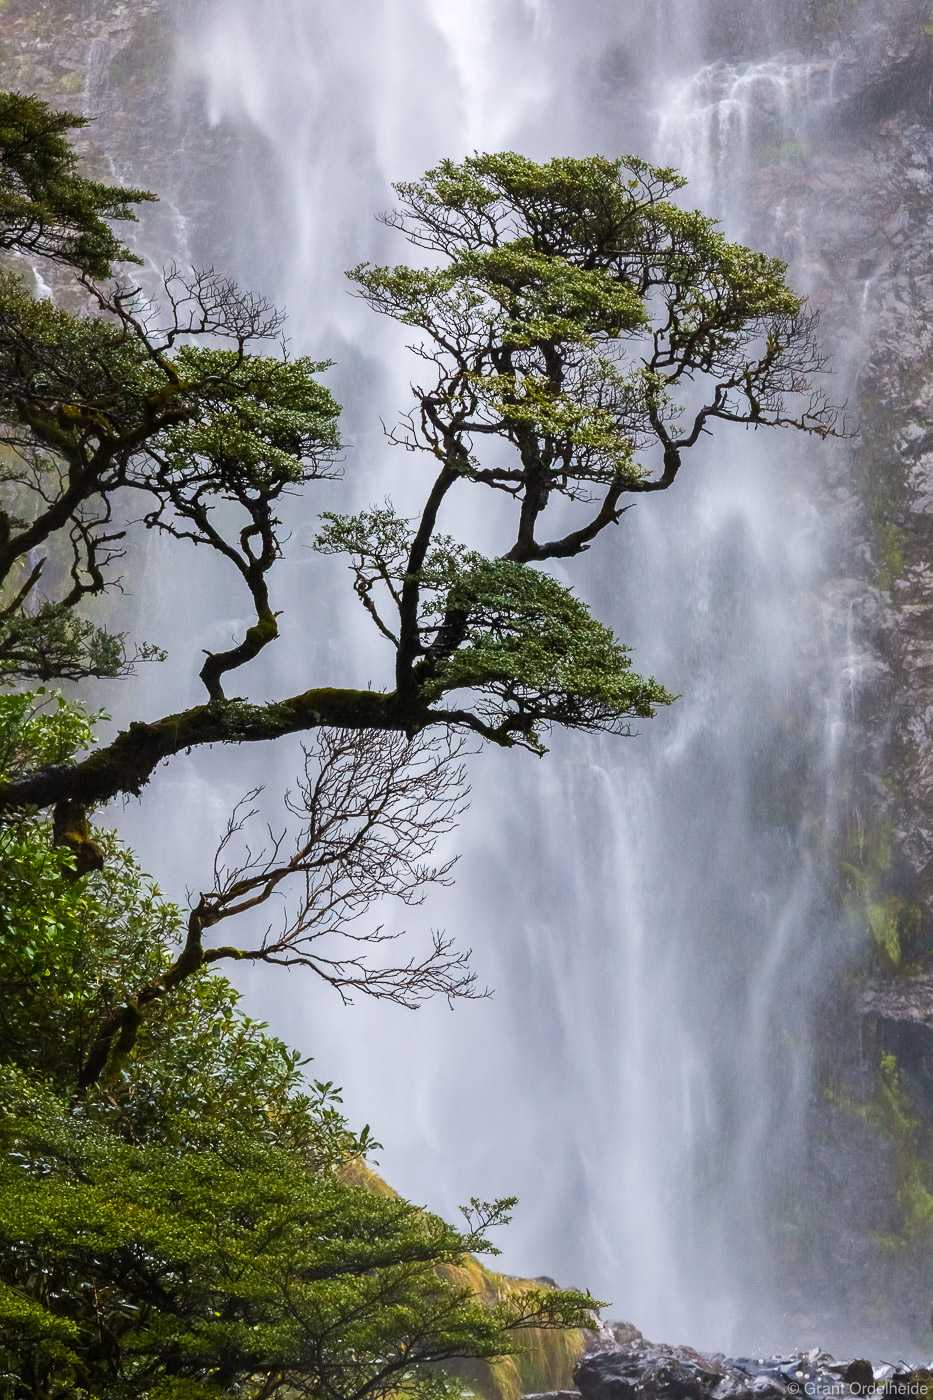 A lone tree in front of Devils Punchbowl falls at Arthur's Pass on New Zealand's South Island.